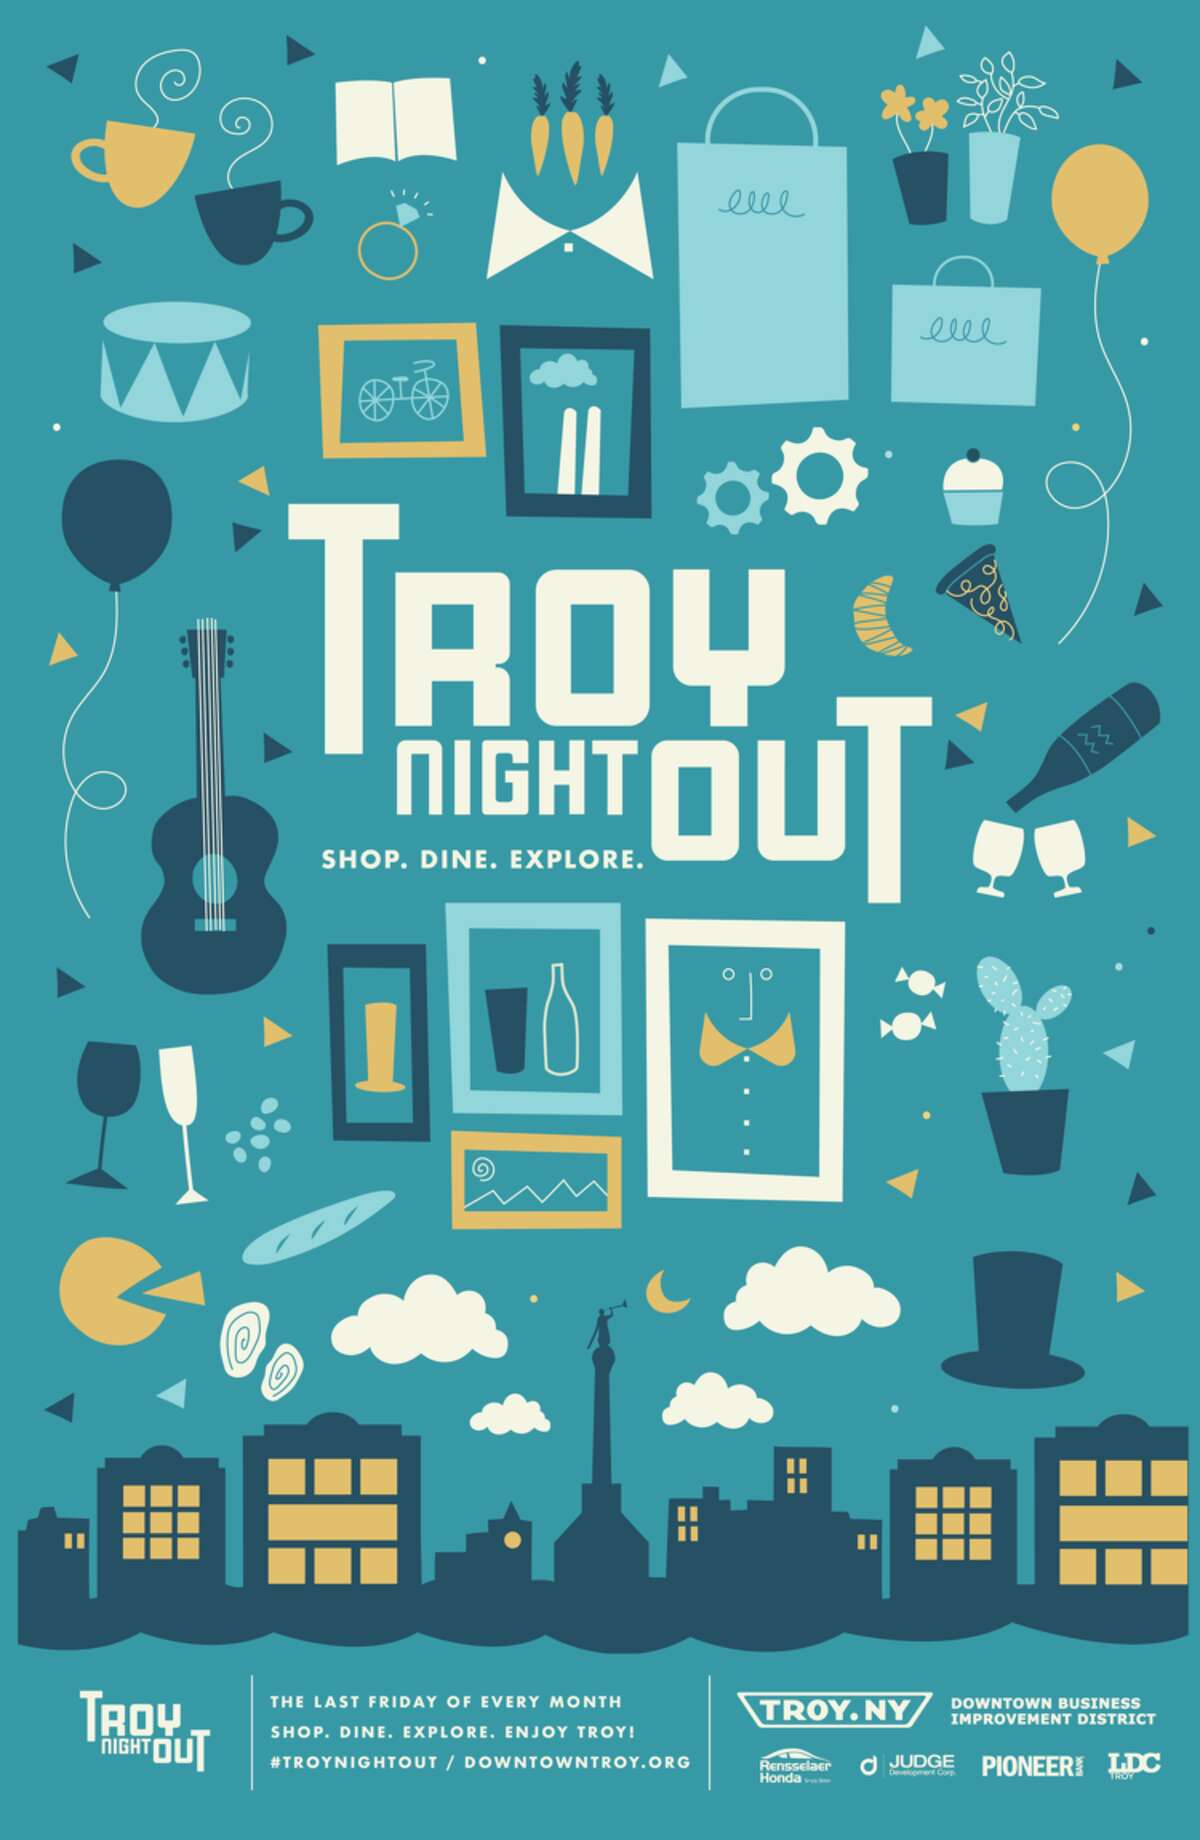 Troy Night Out is a monthly arts and cultural event that takes place the last Friday of every month. Attendees are able to enjoy art events, music venues and special offers at fine restaurants and unique boutiques and shops. This month's theme is Family Day. For the full list of events and special deals, click here. When: Friday, May 26, 5 - 9 PM. Where:Downtown Troy.